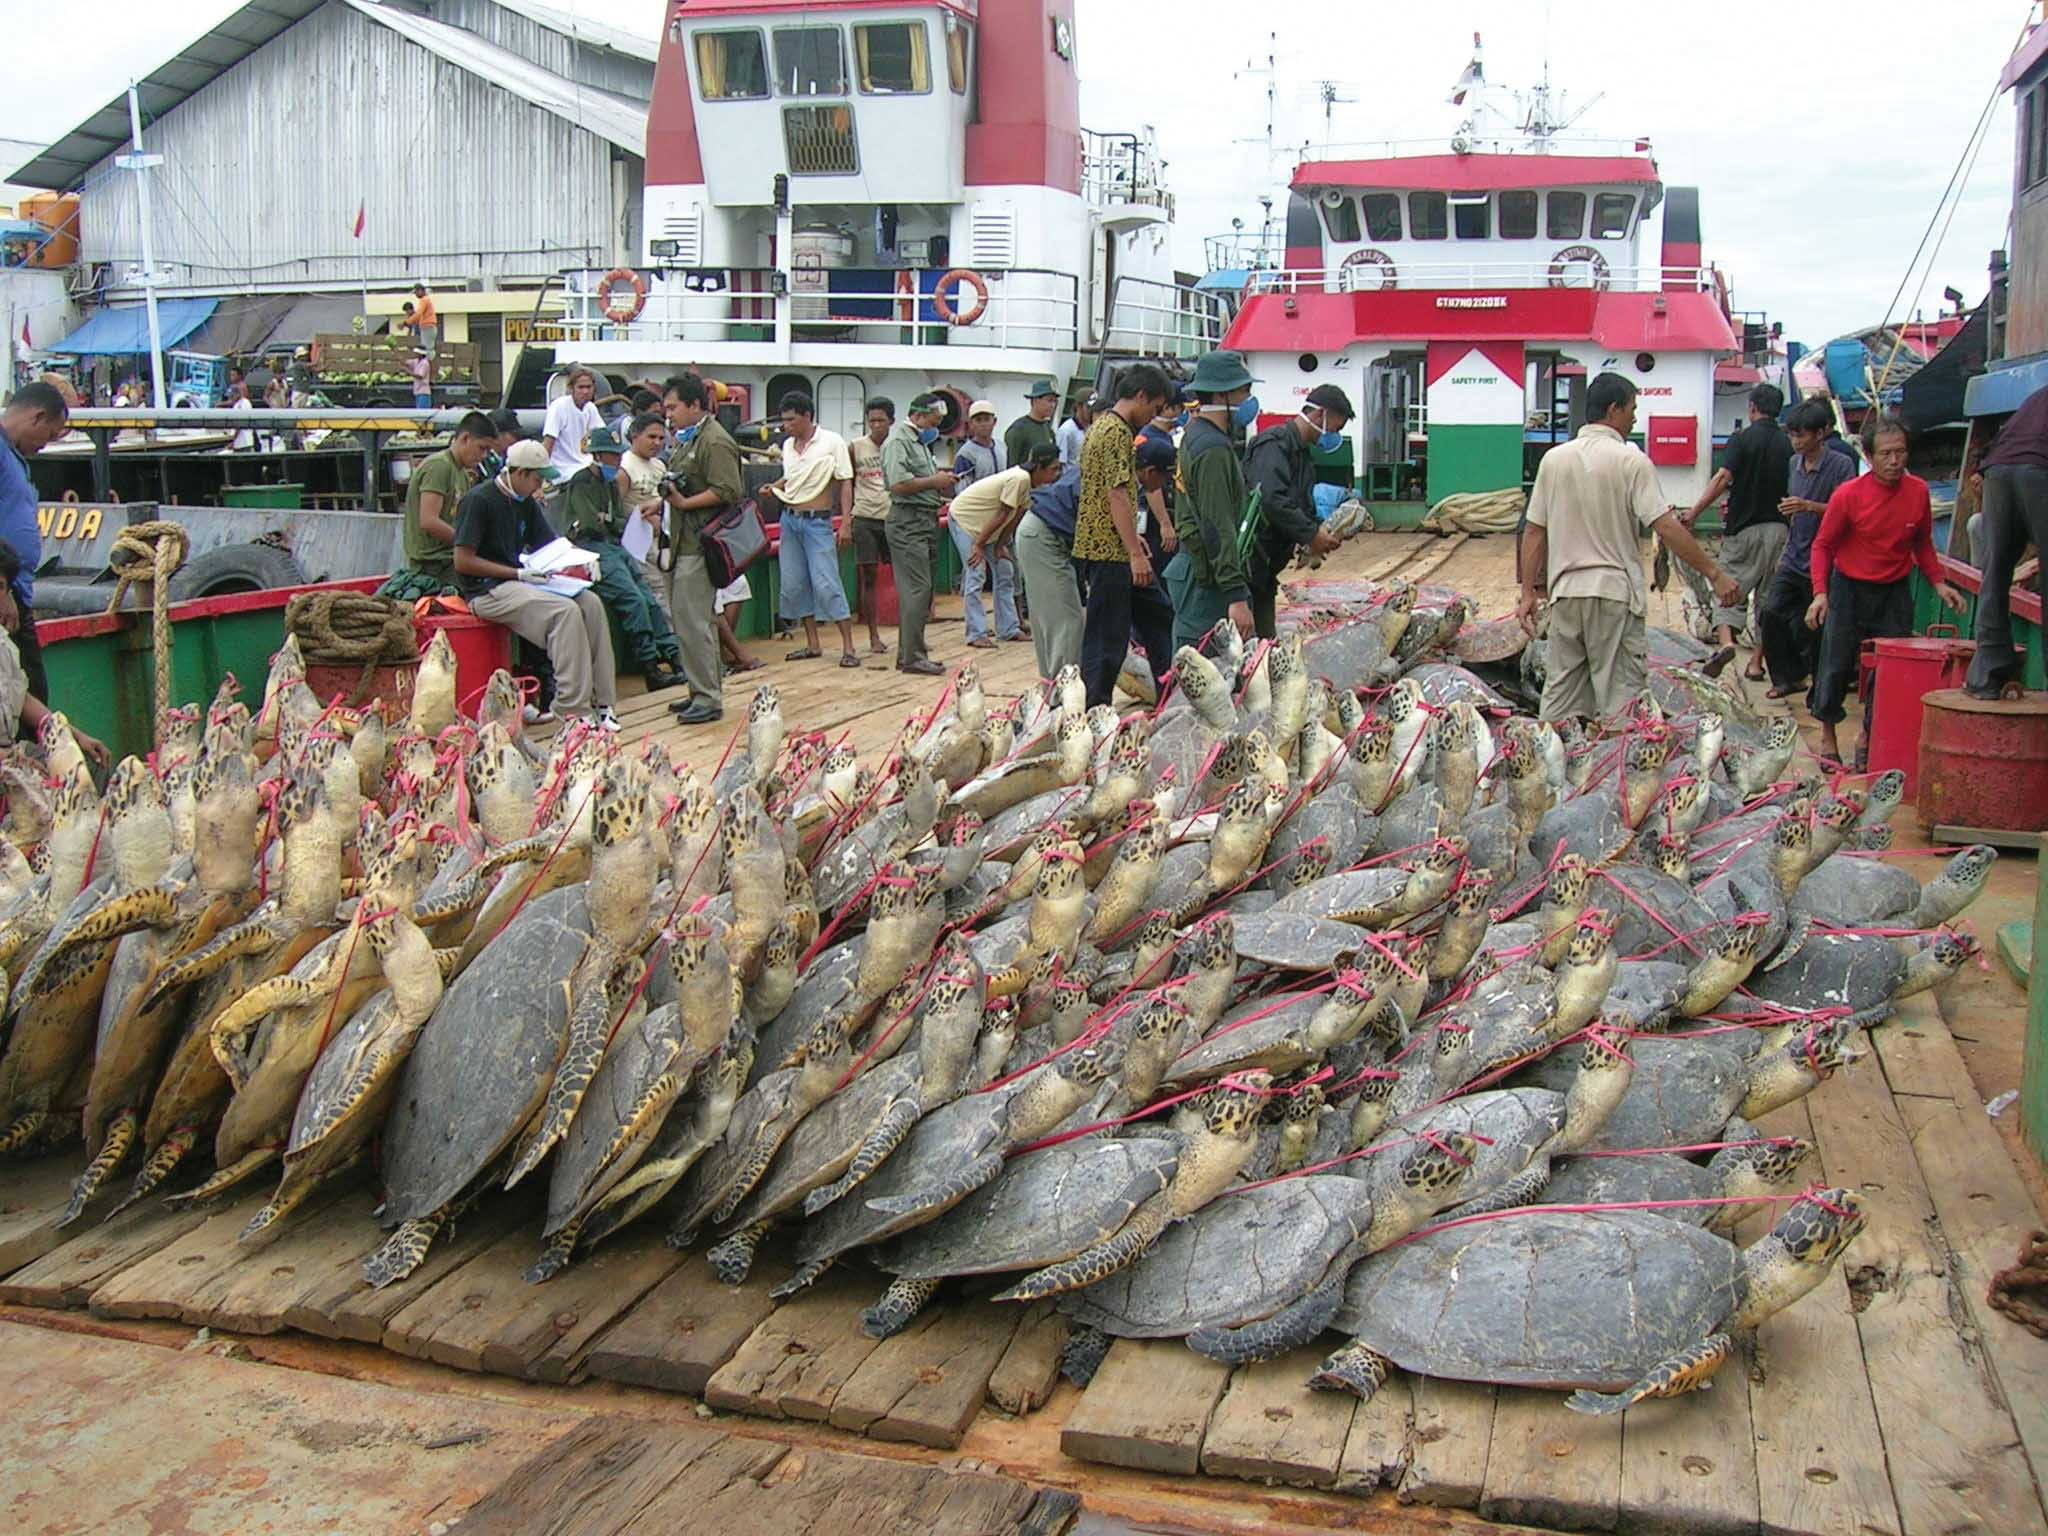 An illegal Chinese fishing vessel with 397 dead turtles aboard was seized in East Kalimantan, Indonesia, in May 2007. The captain of the boat was later sentenced to 4 years in prison by the Tarakan Court in East Kalimantan, and 22 members of the vessel's crew were deported to China. © WWF-TNC Joint Marine Program, Berau